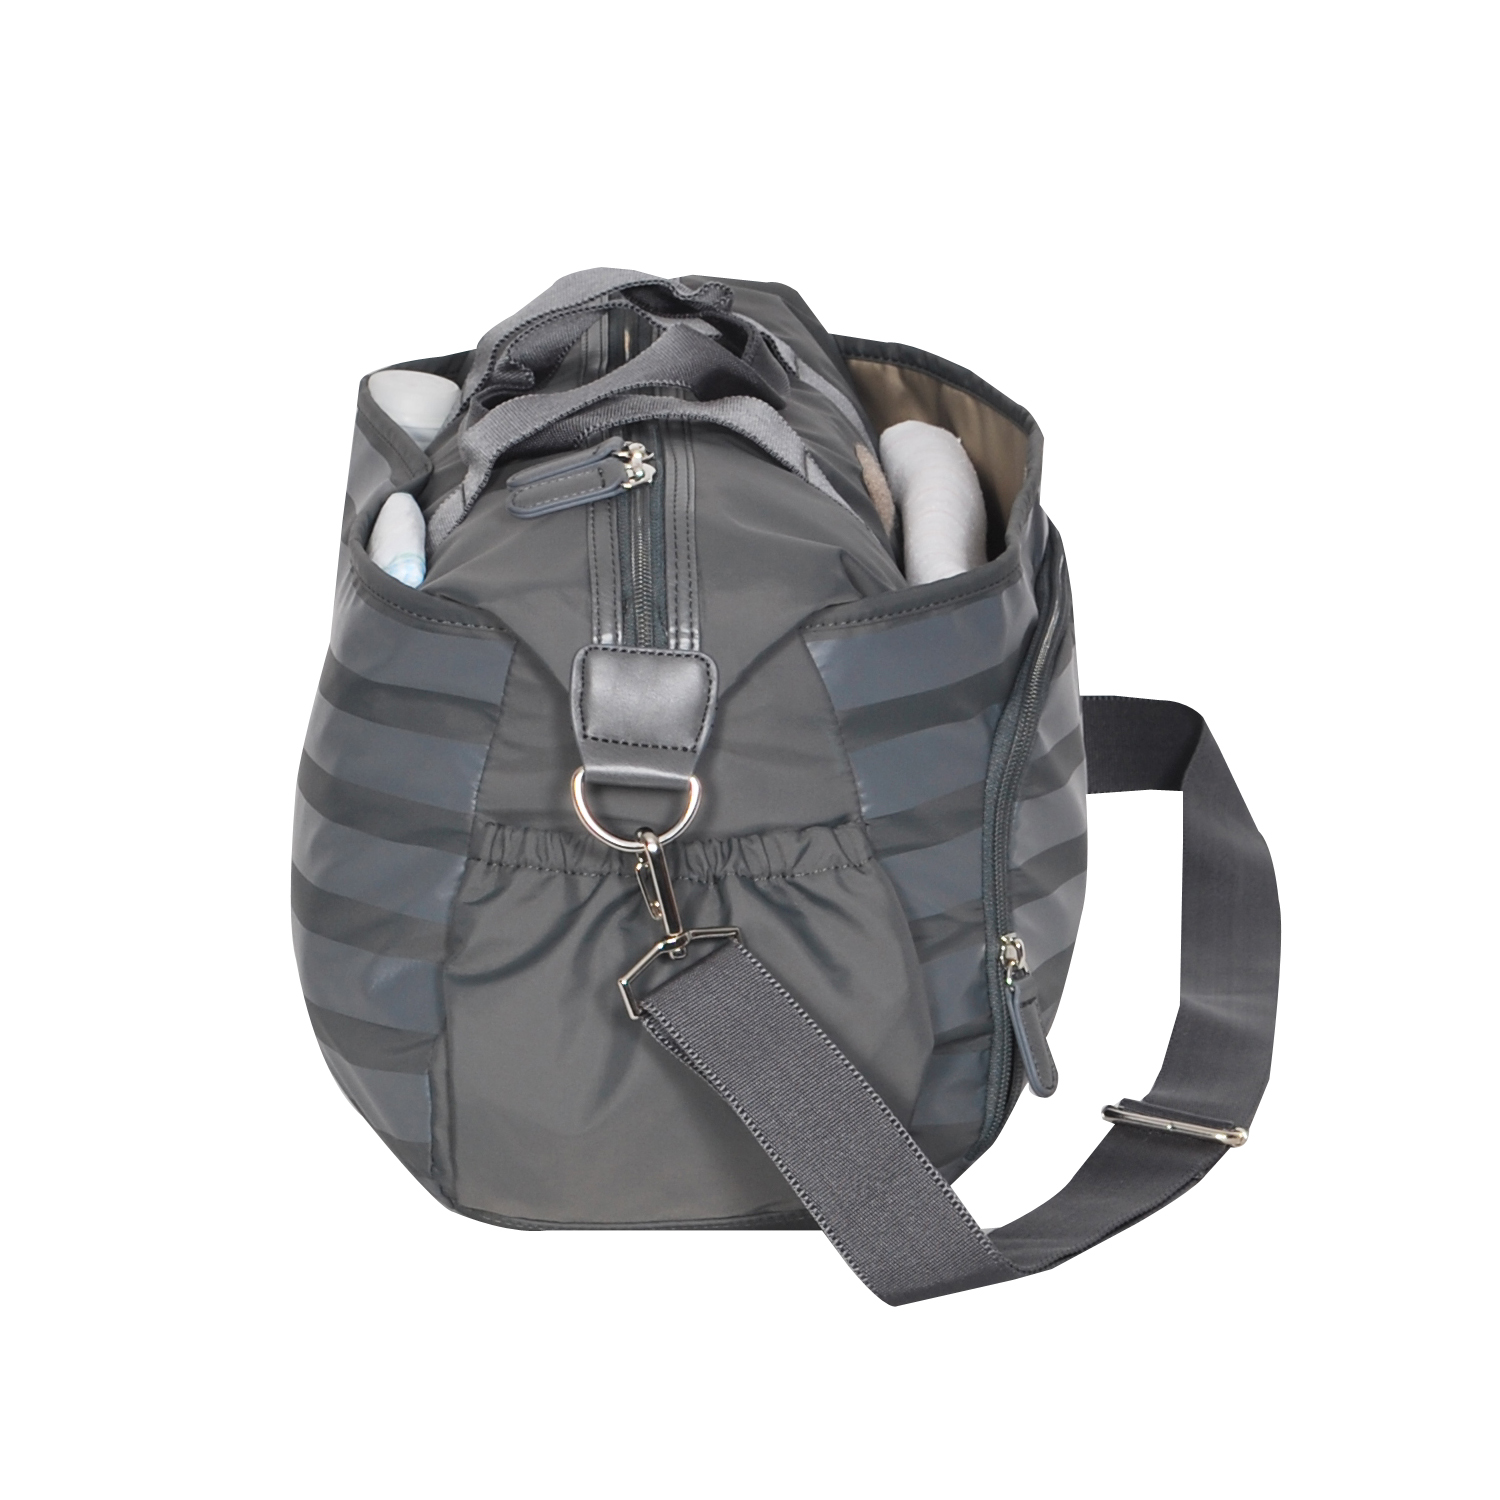 Everest Diaper Bag w/ Changing Station